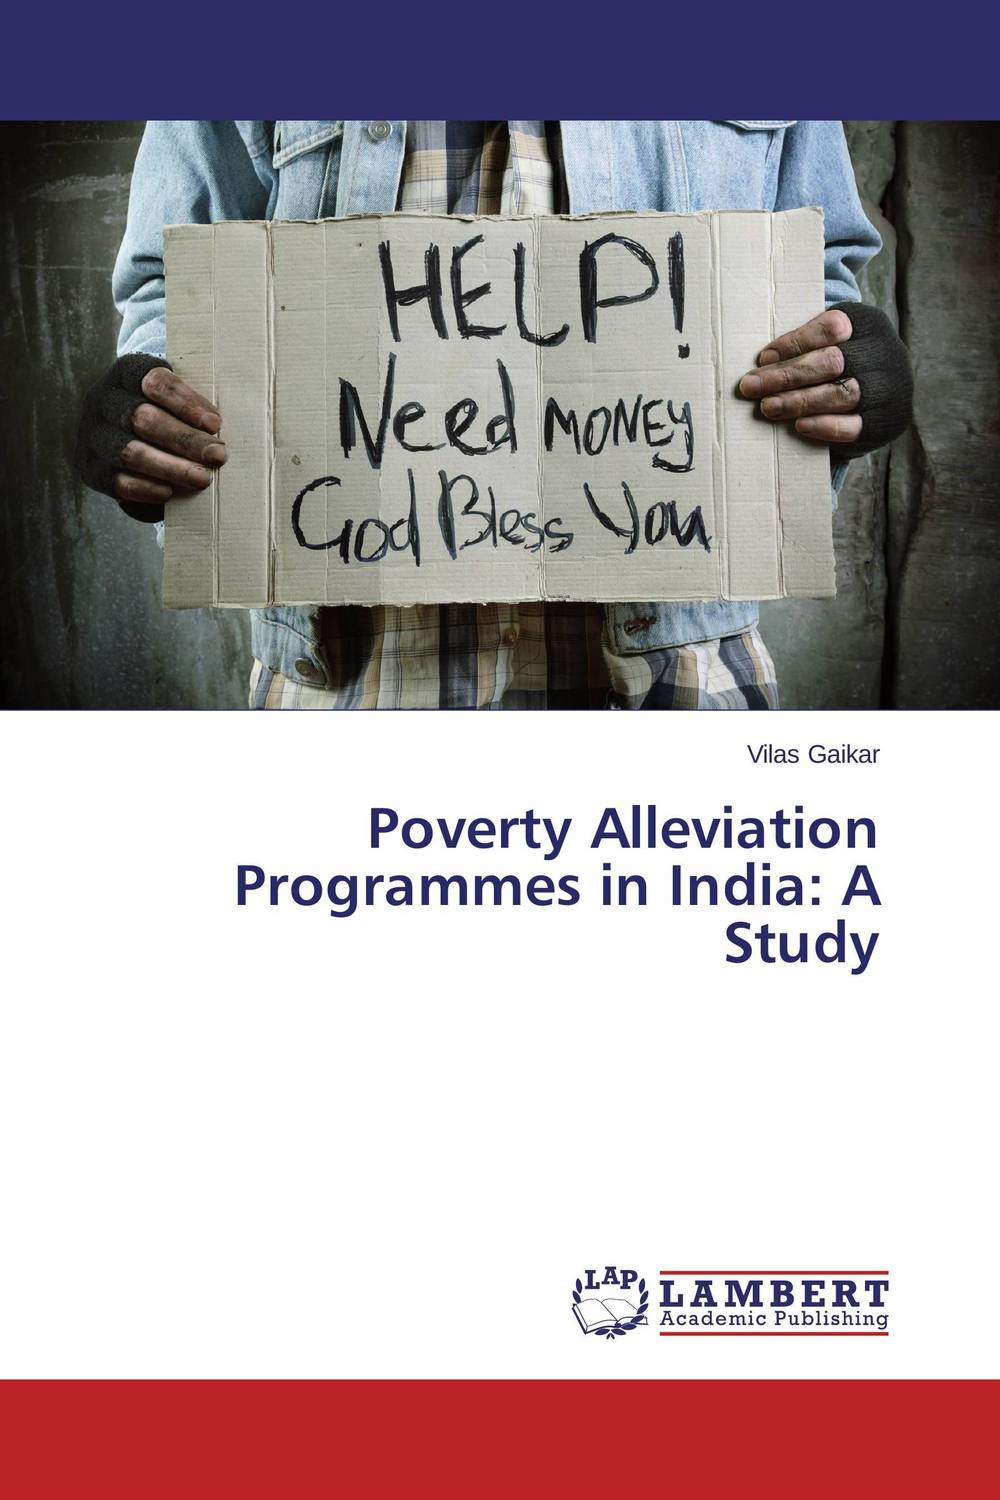 Poverty Alleviation Programmes in India: A Study role of ict in rural poverty alleviation